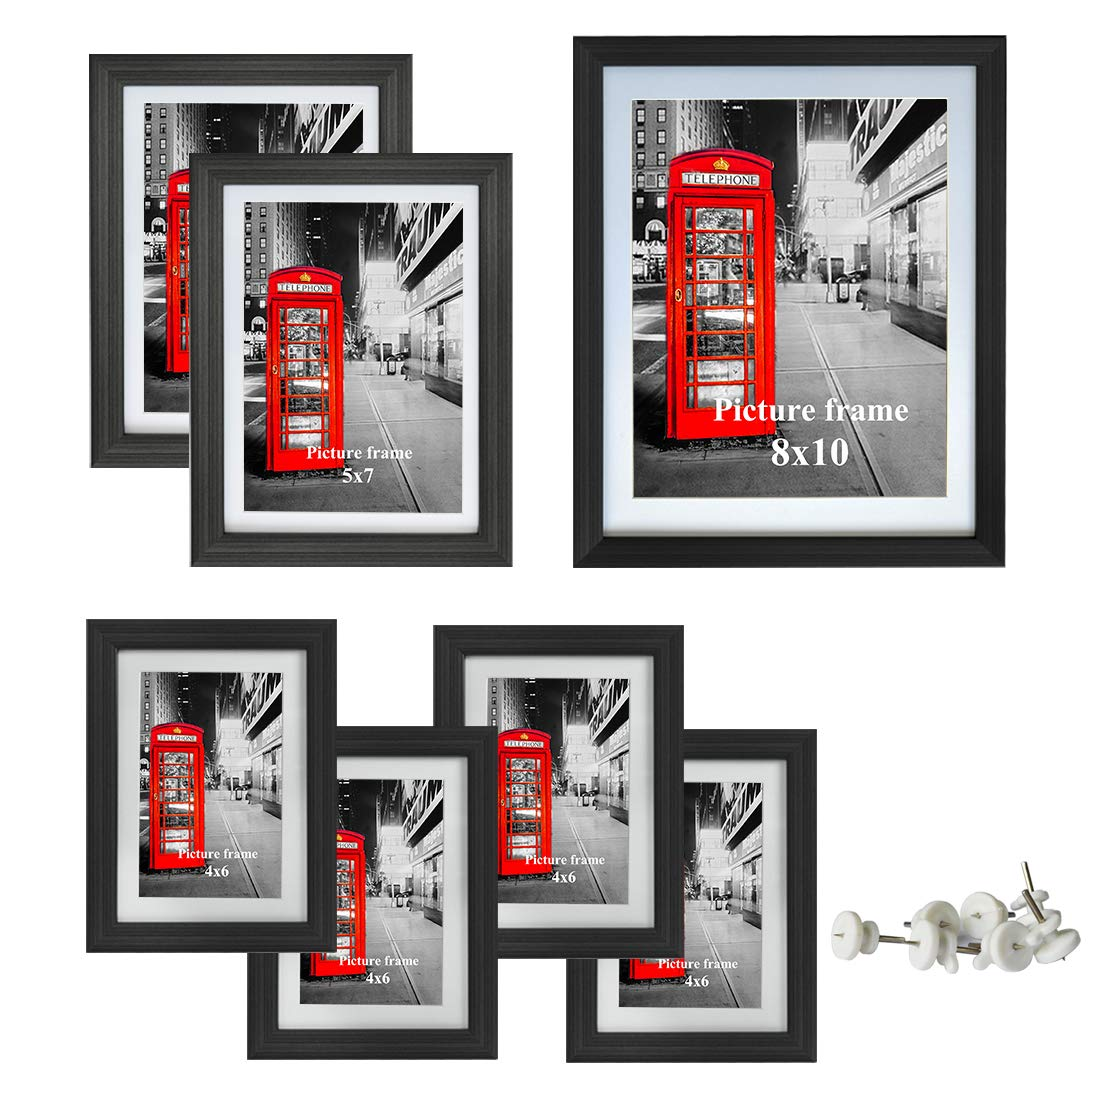 Amazing Roo Picture Frame 7 Piece with Glass Front Multi Photo Frames Gallery Set Dispaly for Wall or Tabletop, One 8x10, Two 5x7, Four 4x6 by Amazing Roo